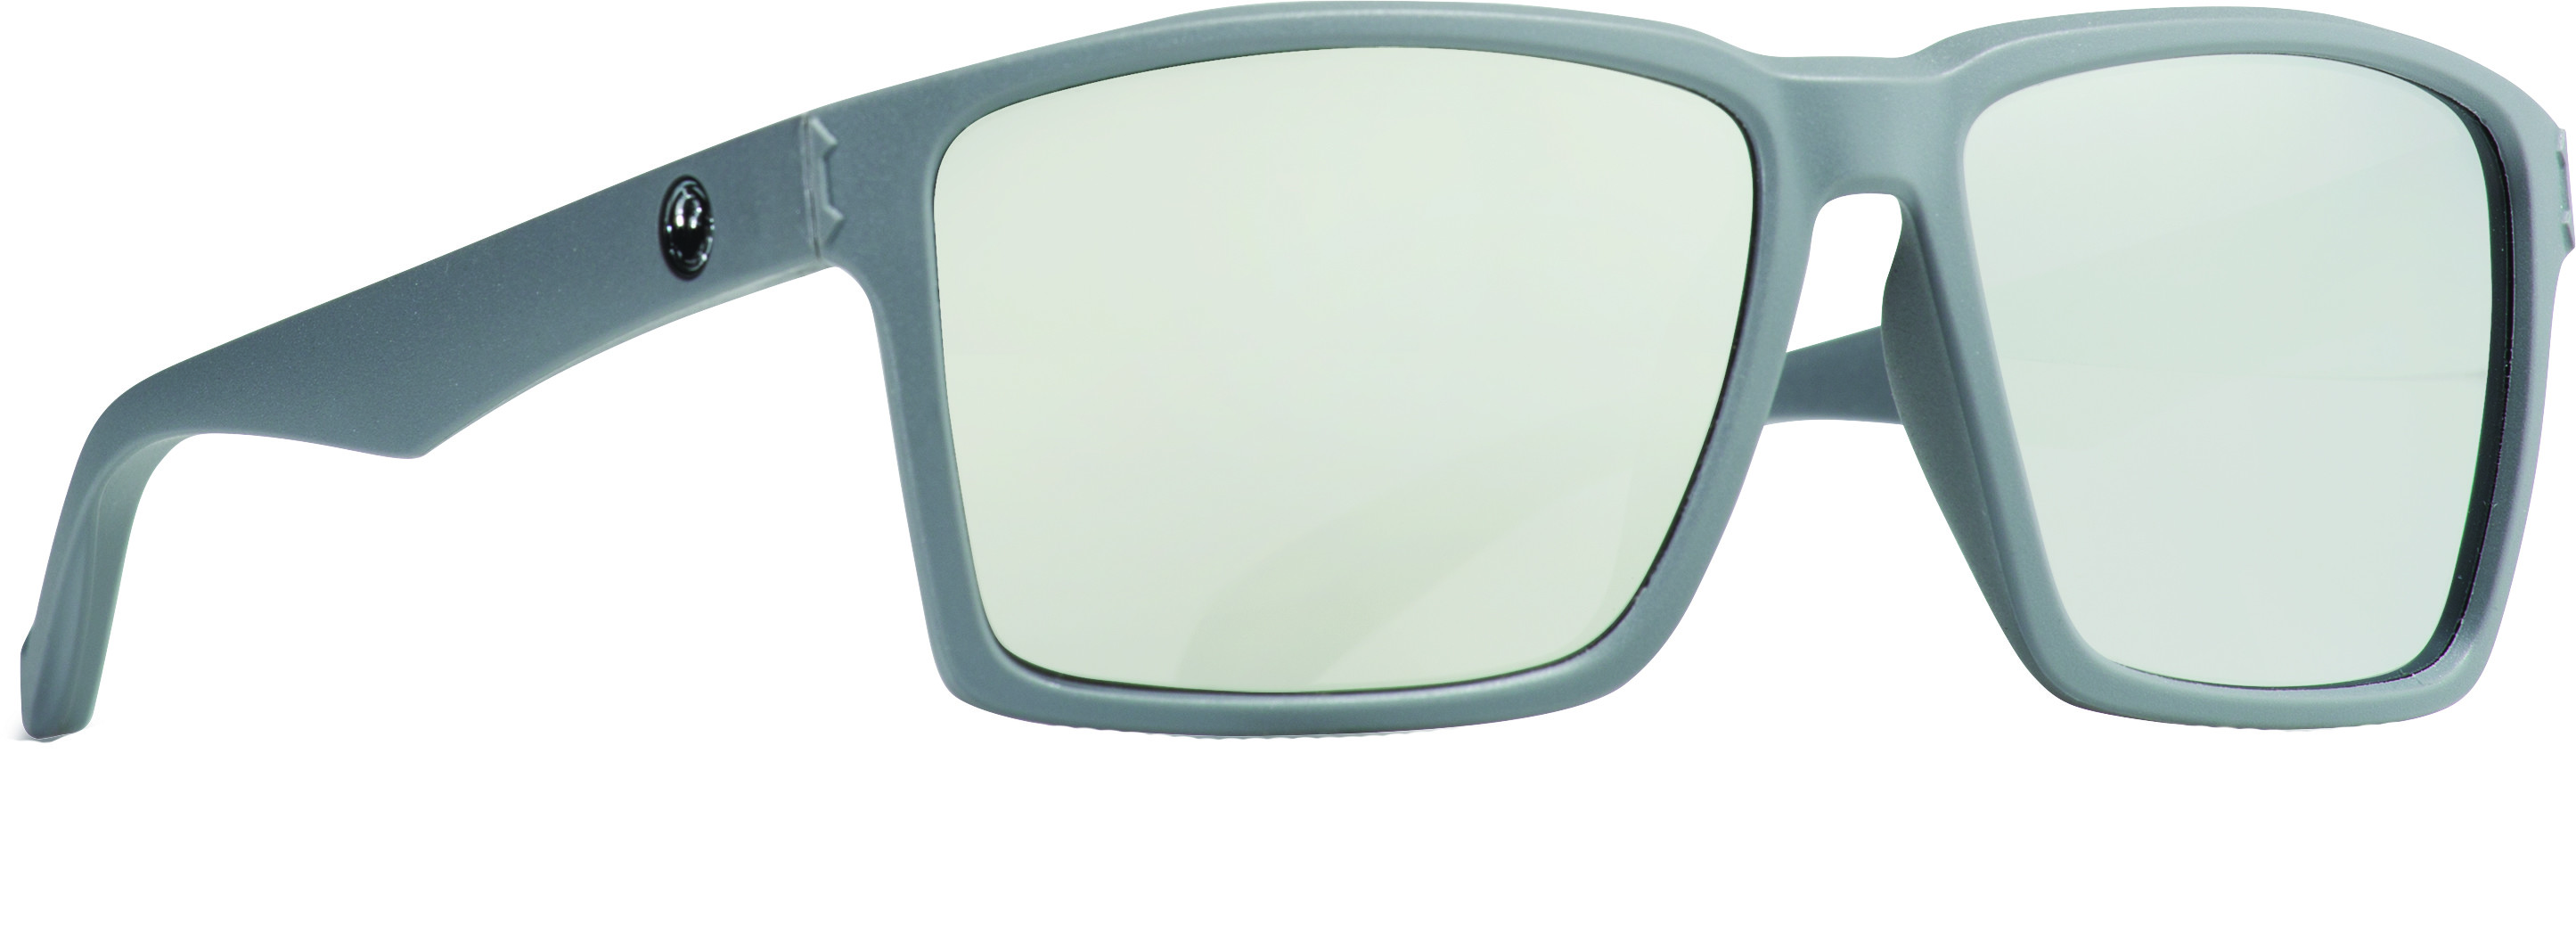 Method Sunglasses Matte Grey W/Silver Ion Lens